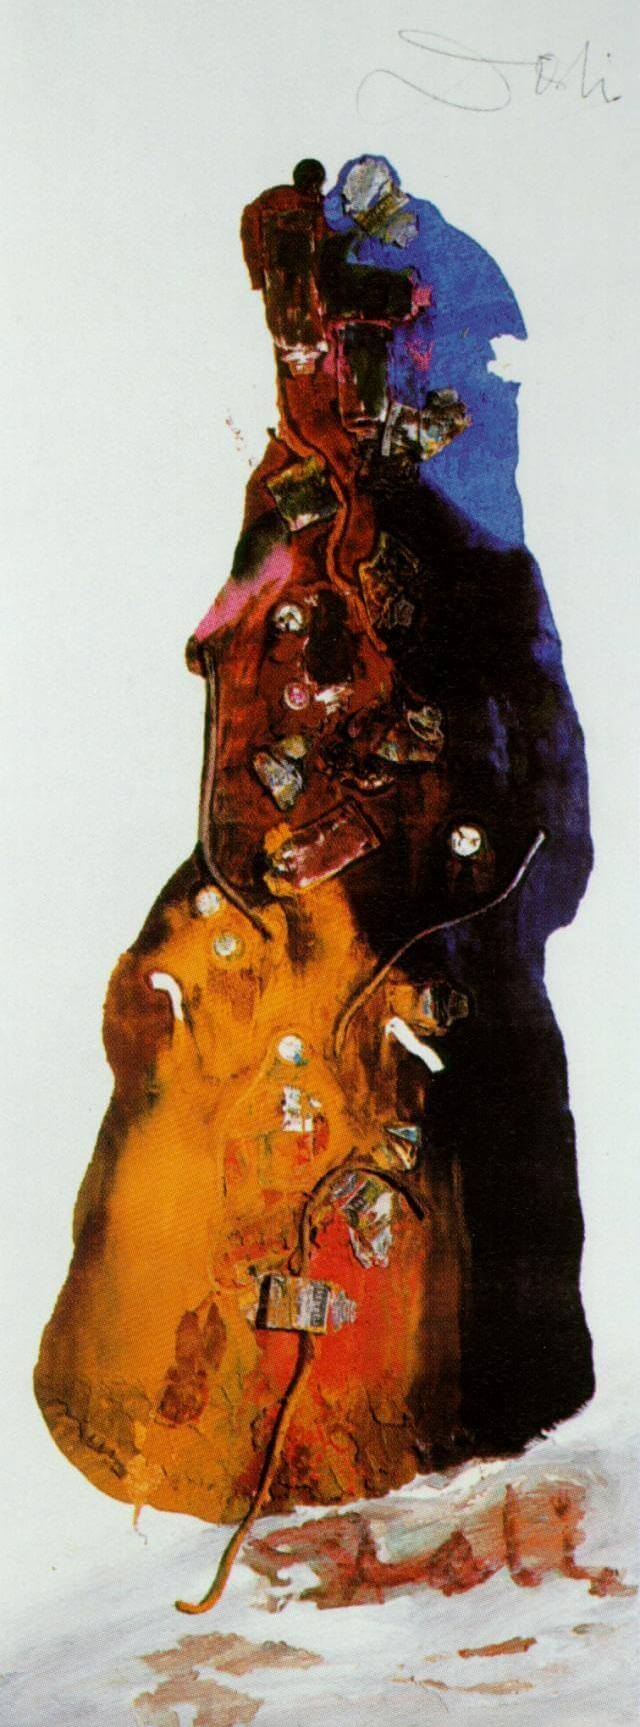 SALVADOR DALI – 1960 – 37 – Untitled (The Lady of Avignon) circa 1960